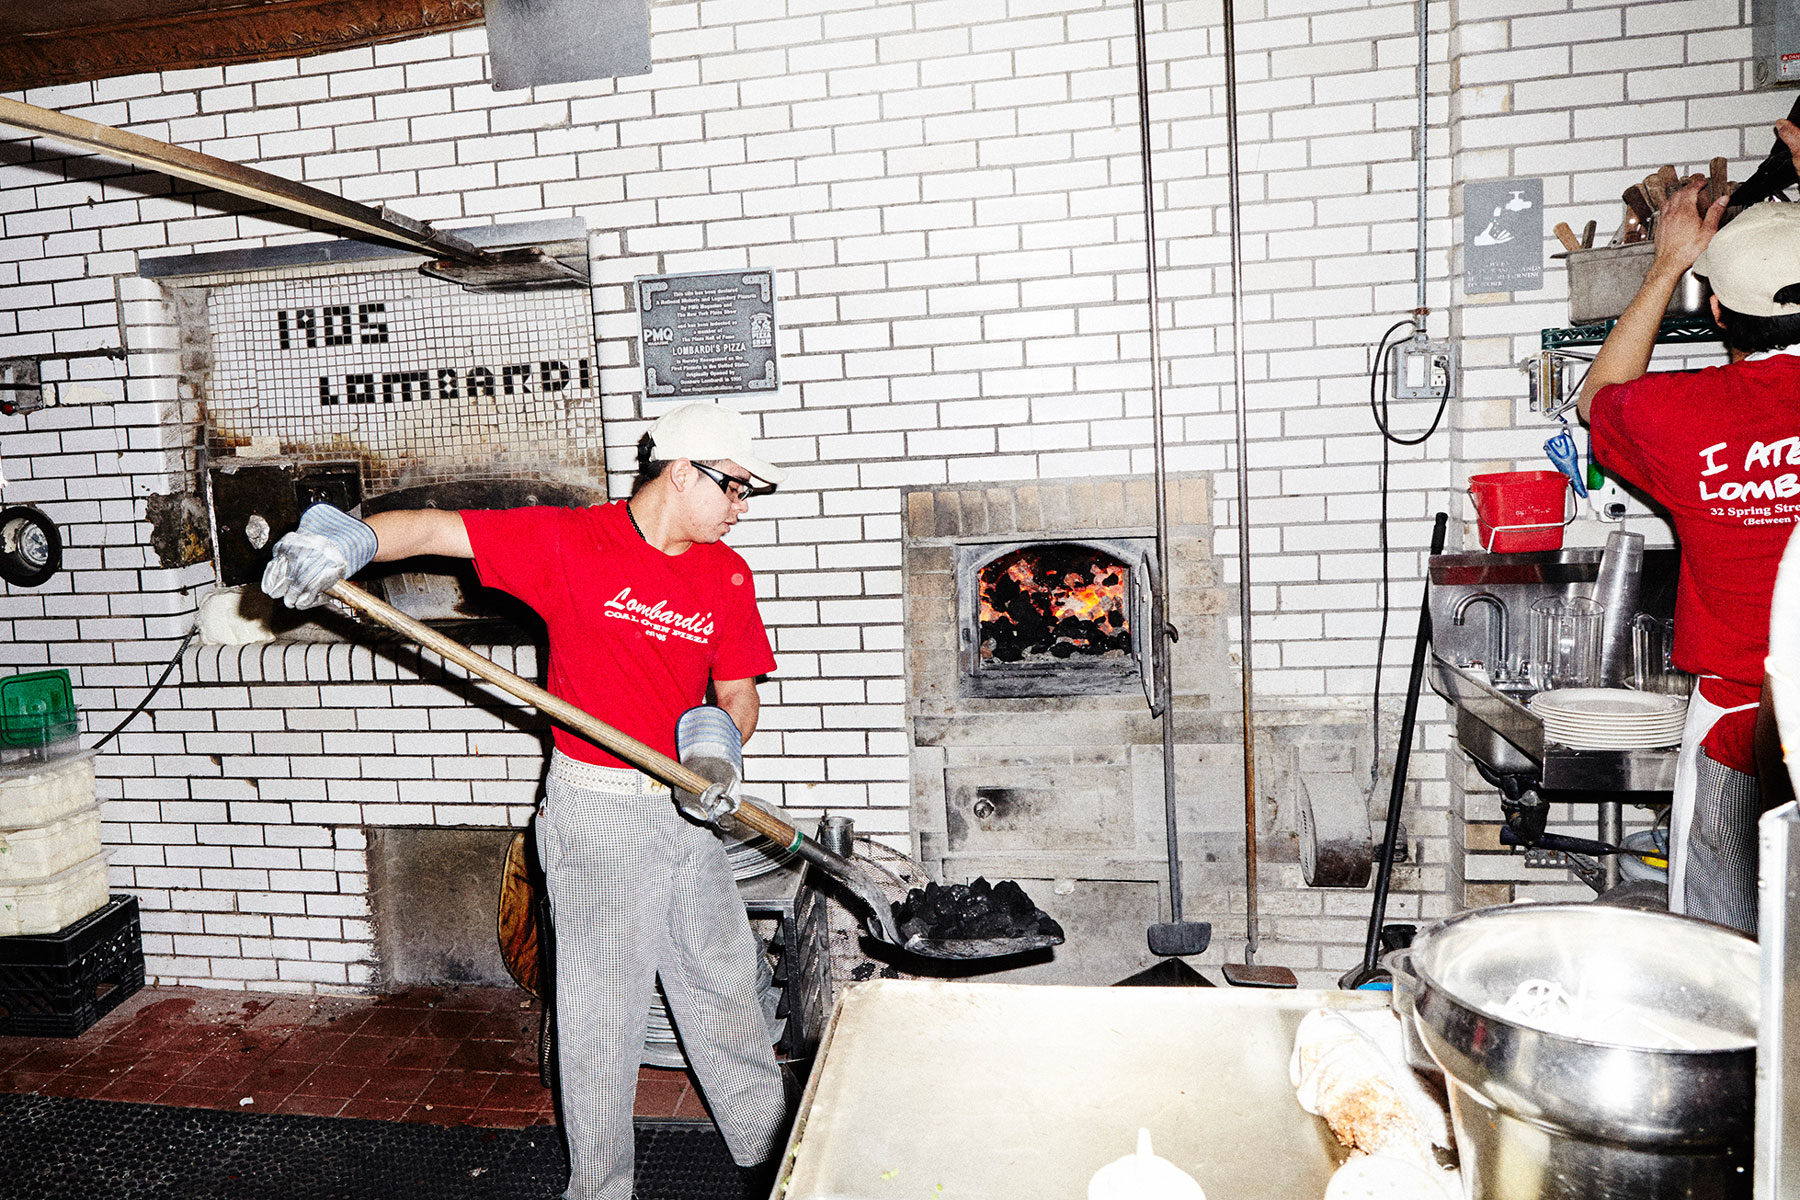 lombardis-pizza-oven-in-action